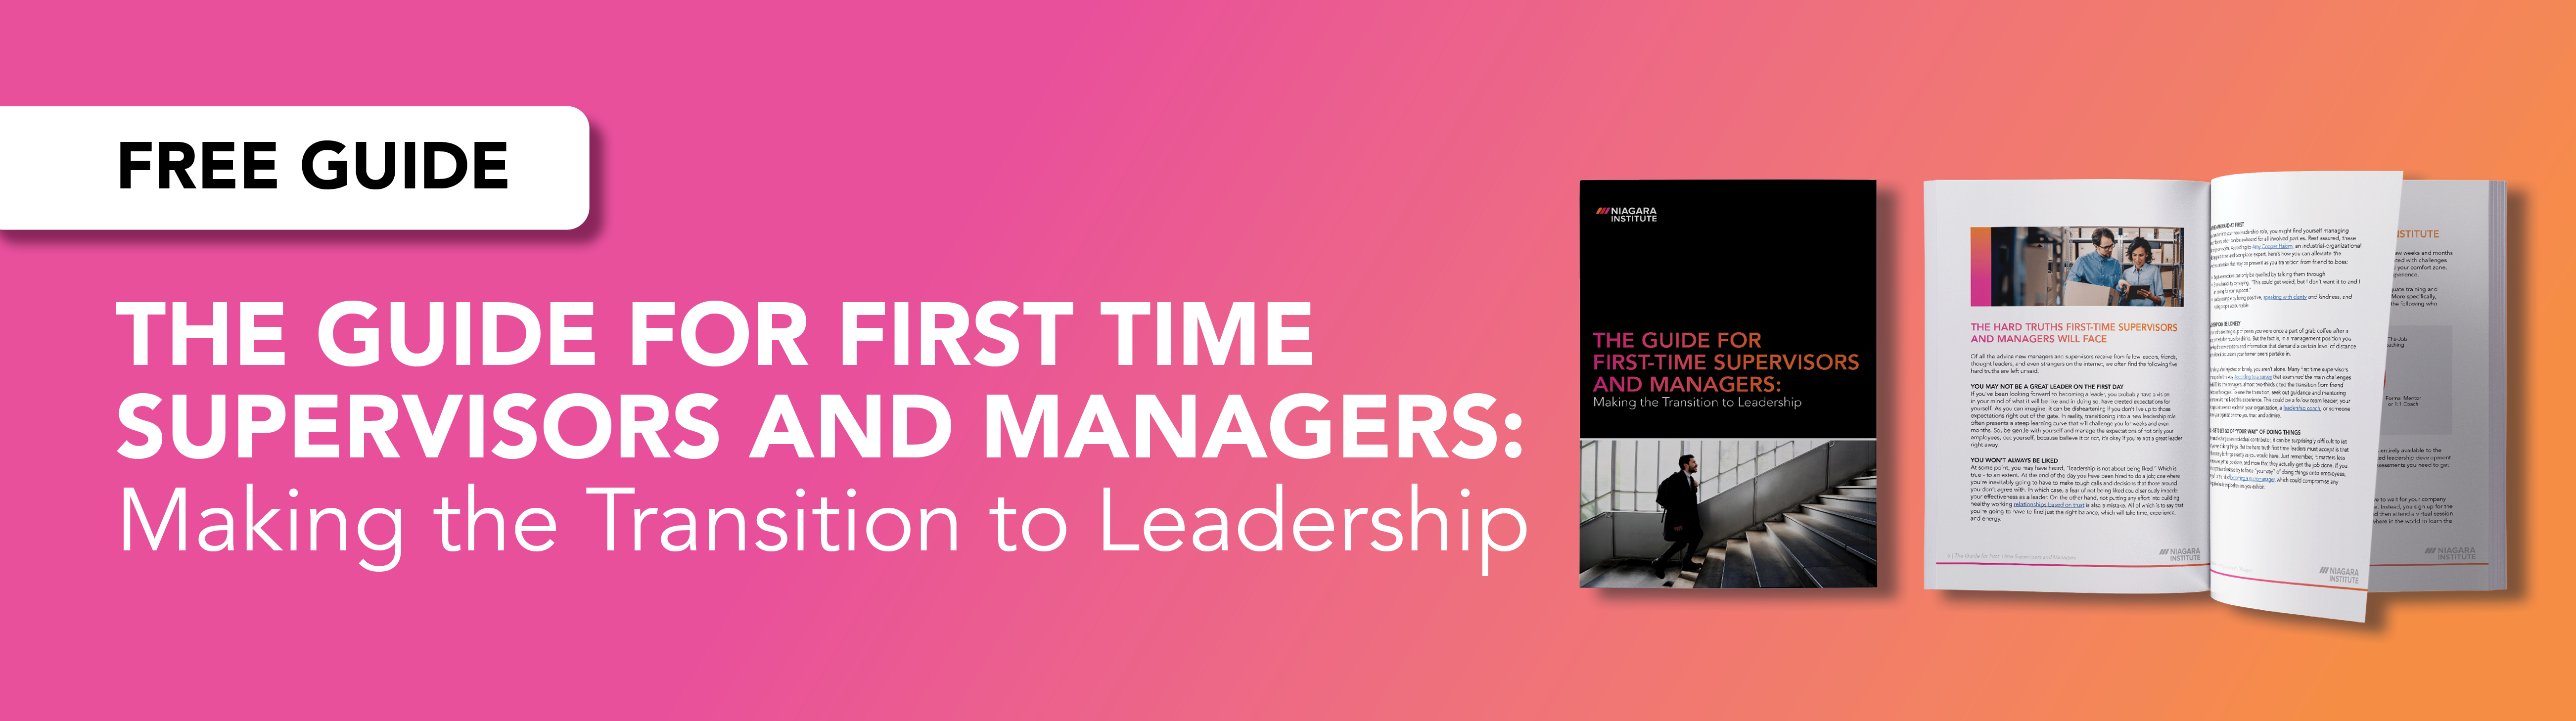 The Guide for First Time Supervisors and Managers